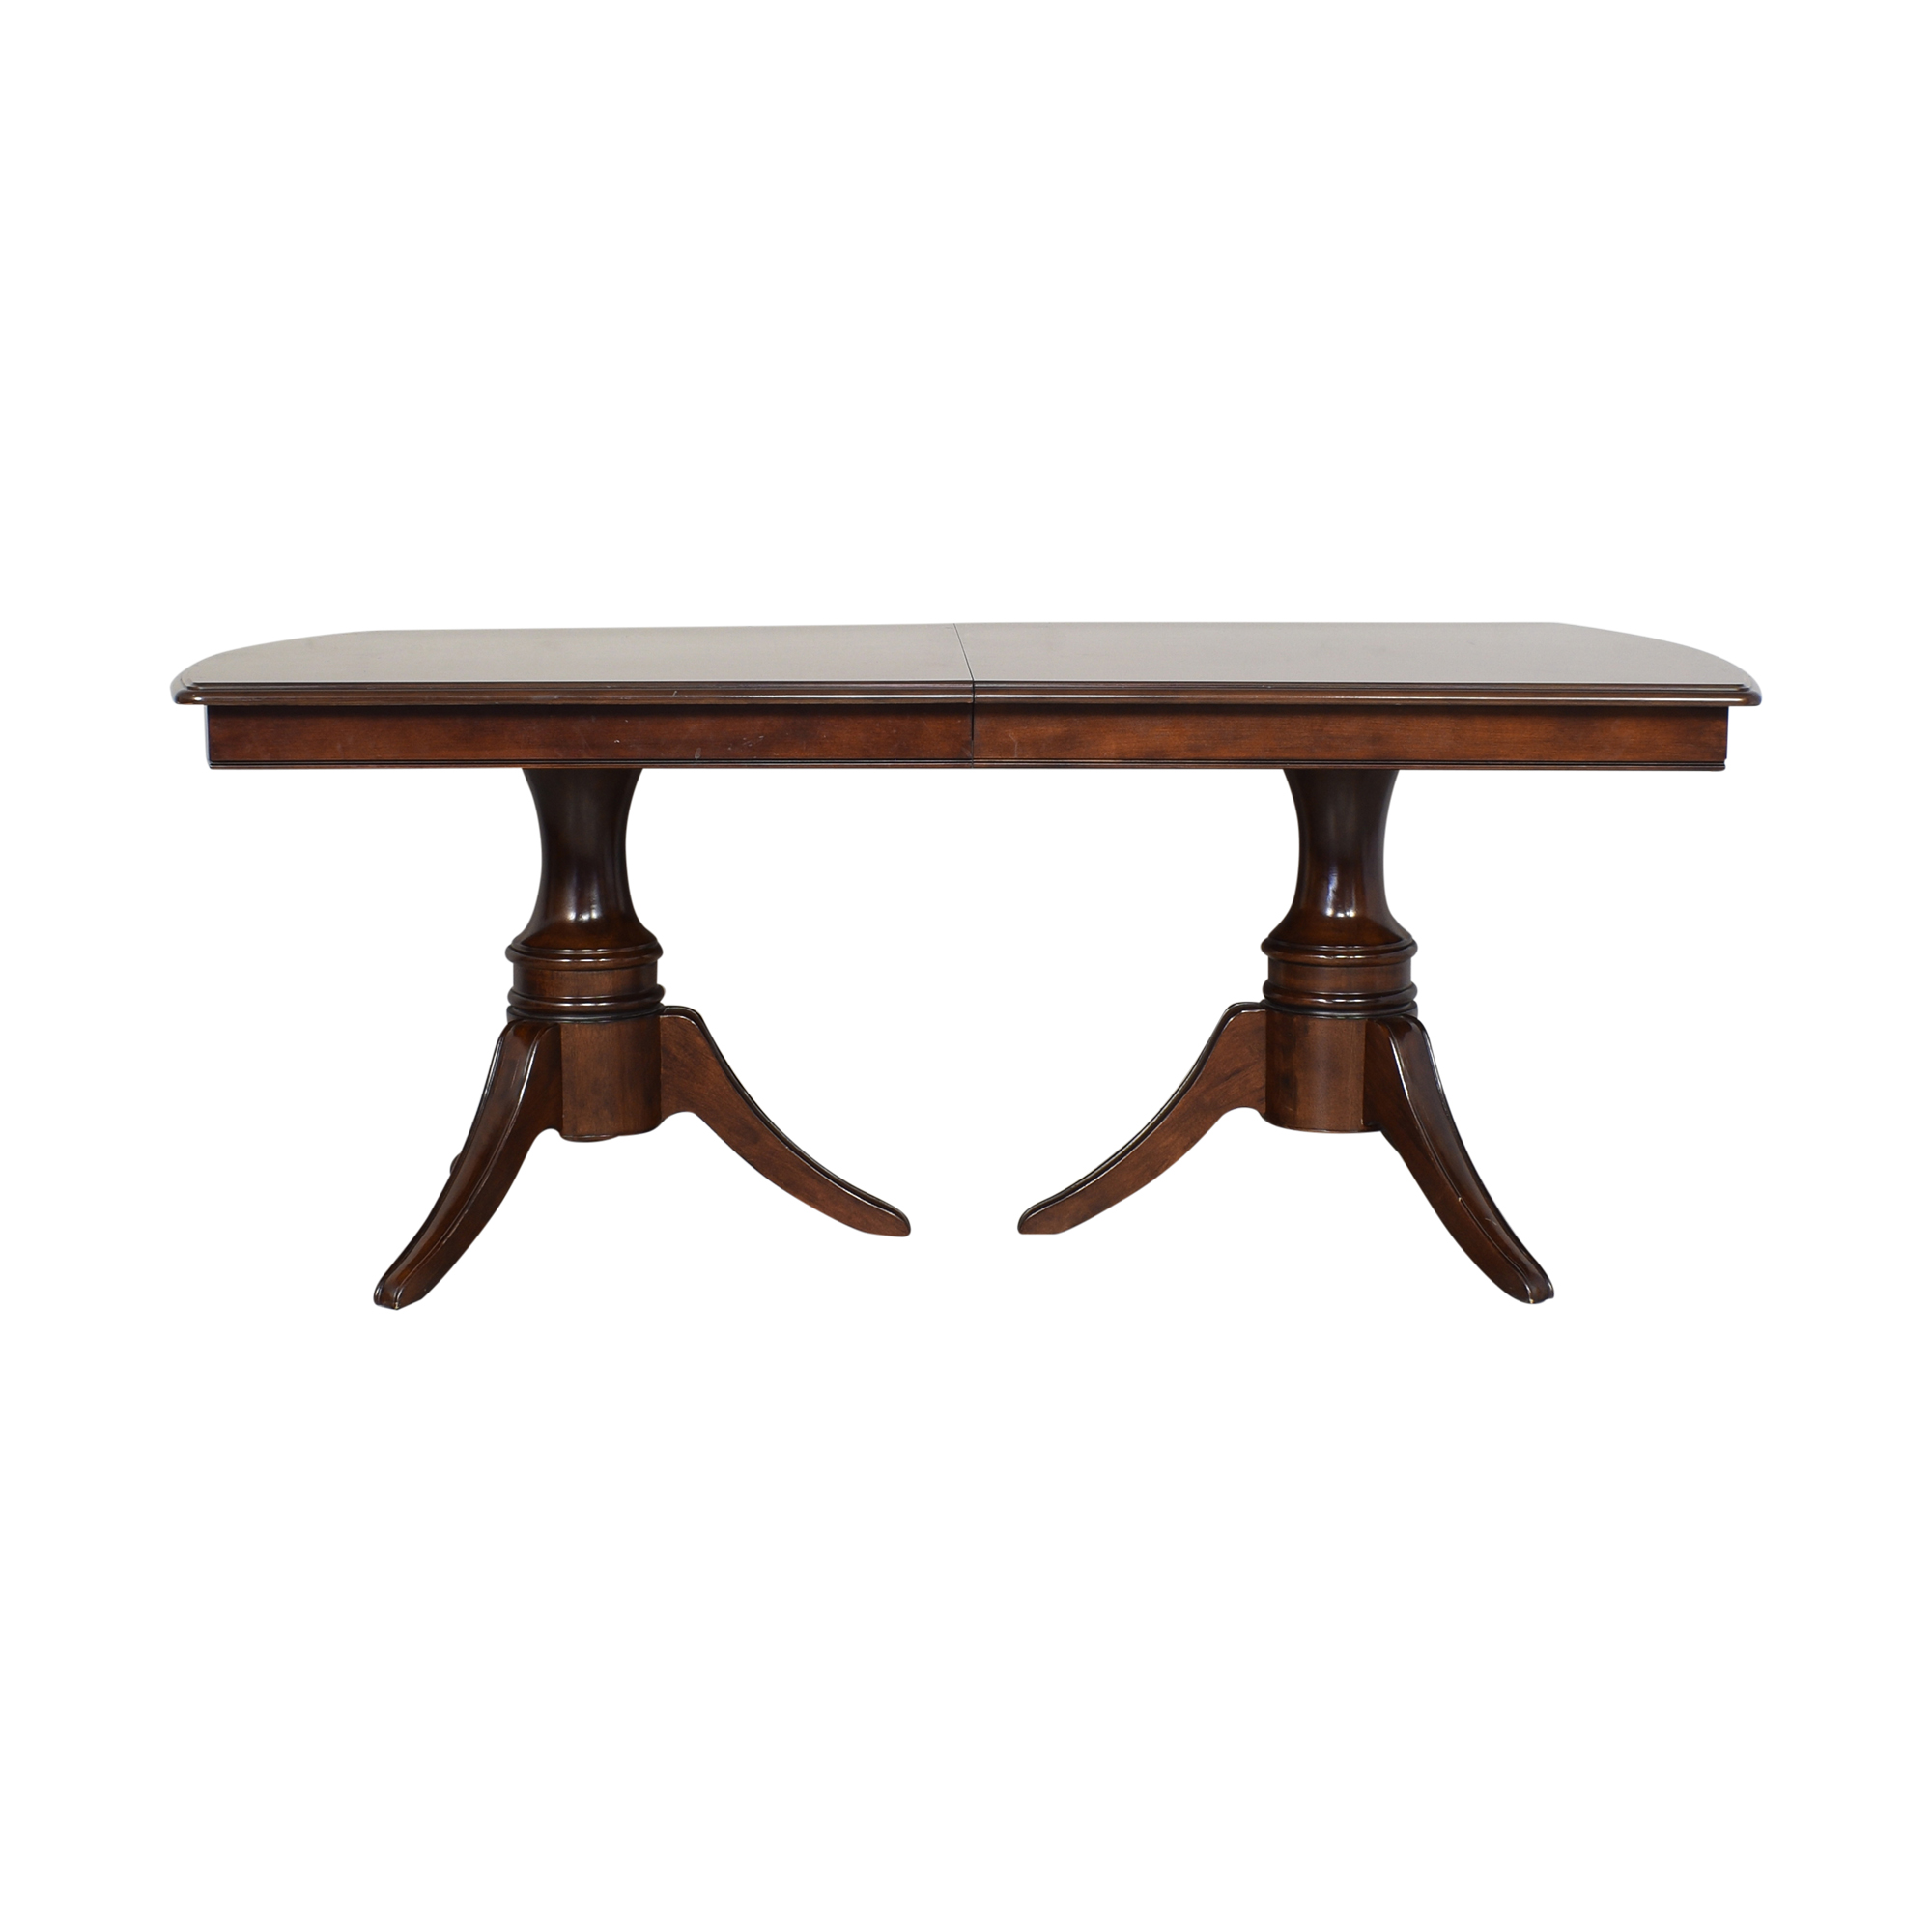 Raymour & Flanigan Double Pedestal Extendable Dining Table / Tables